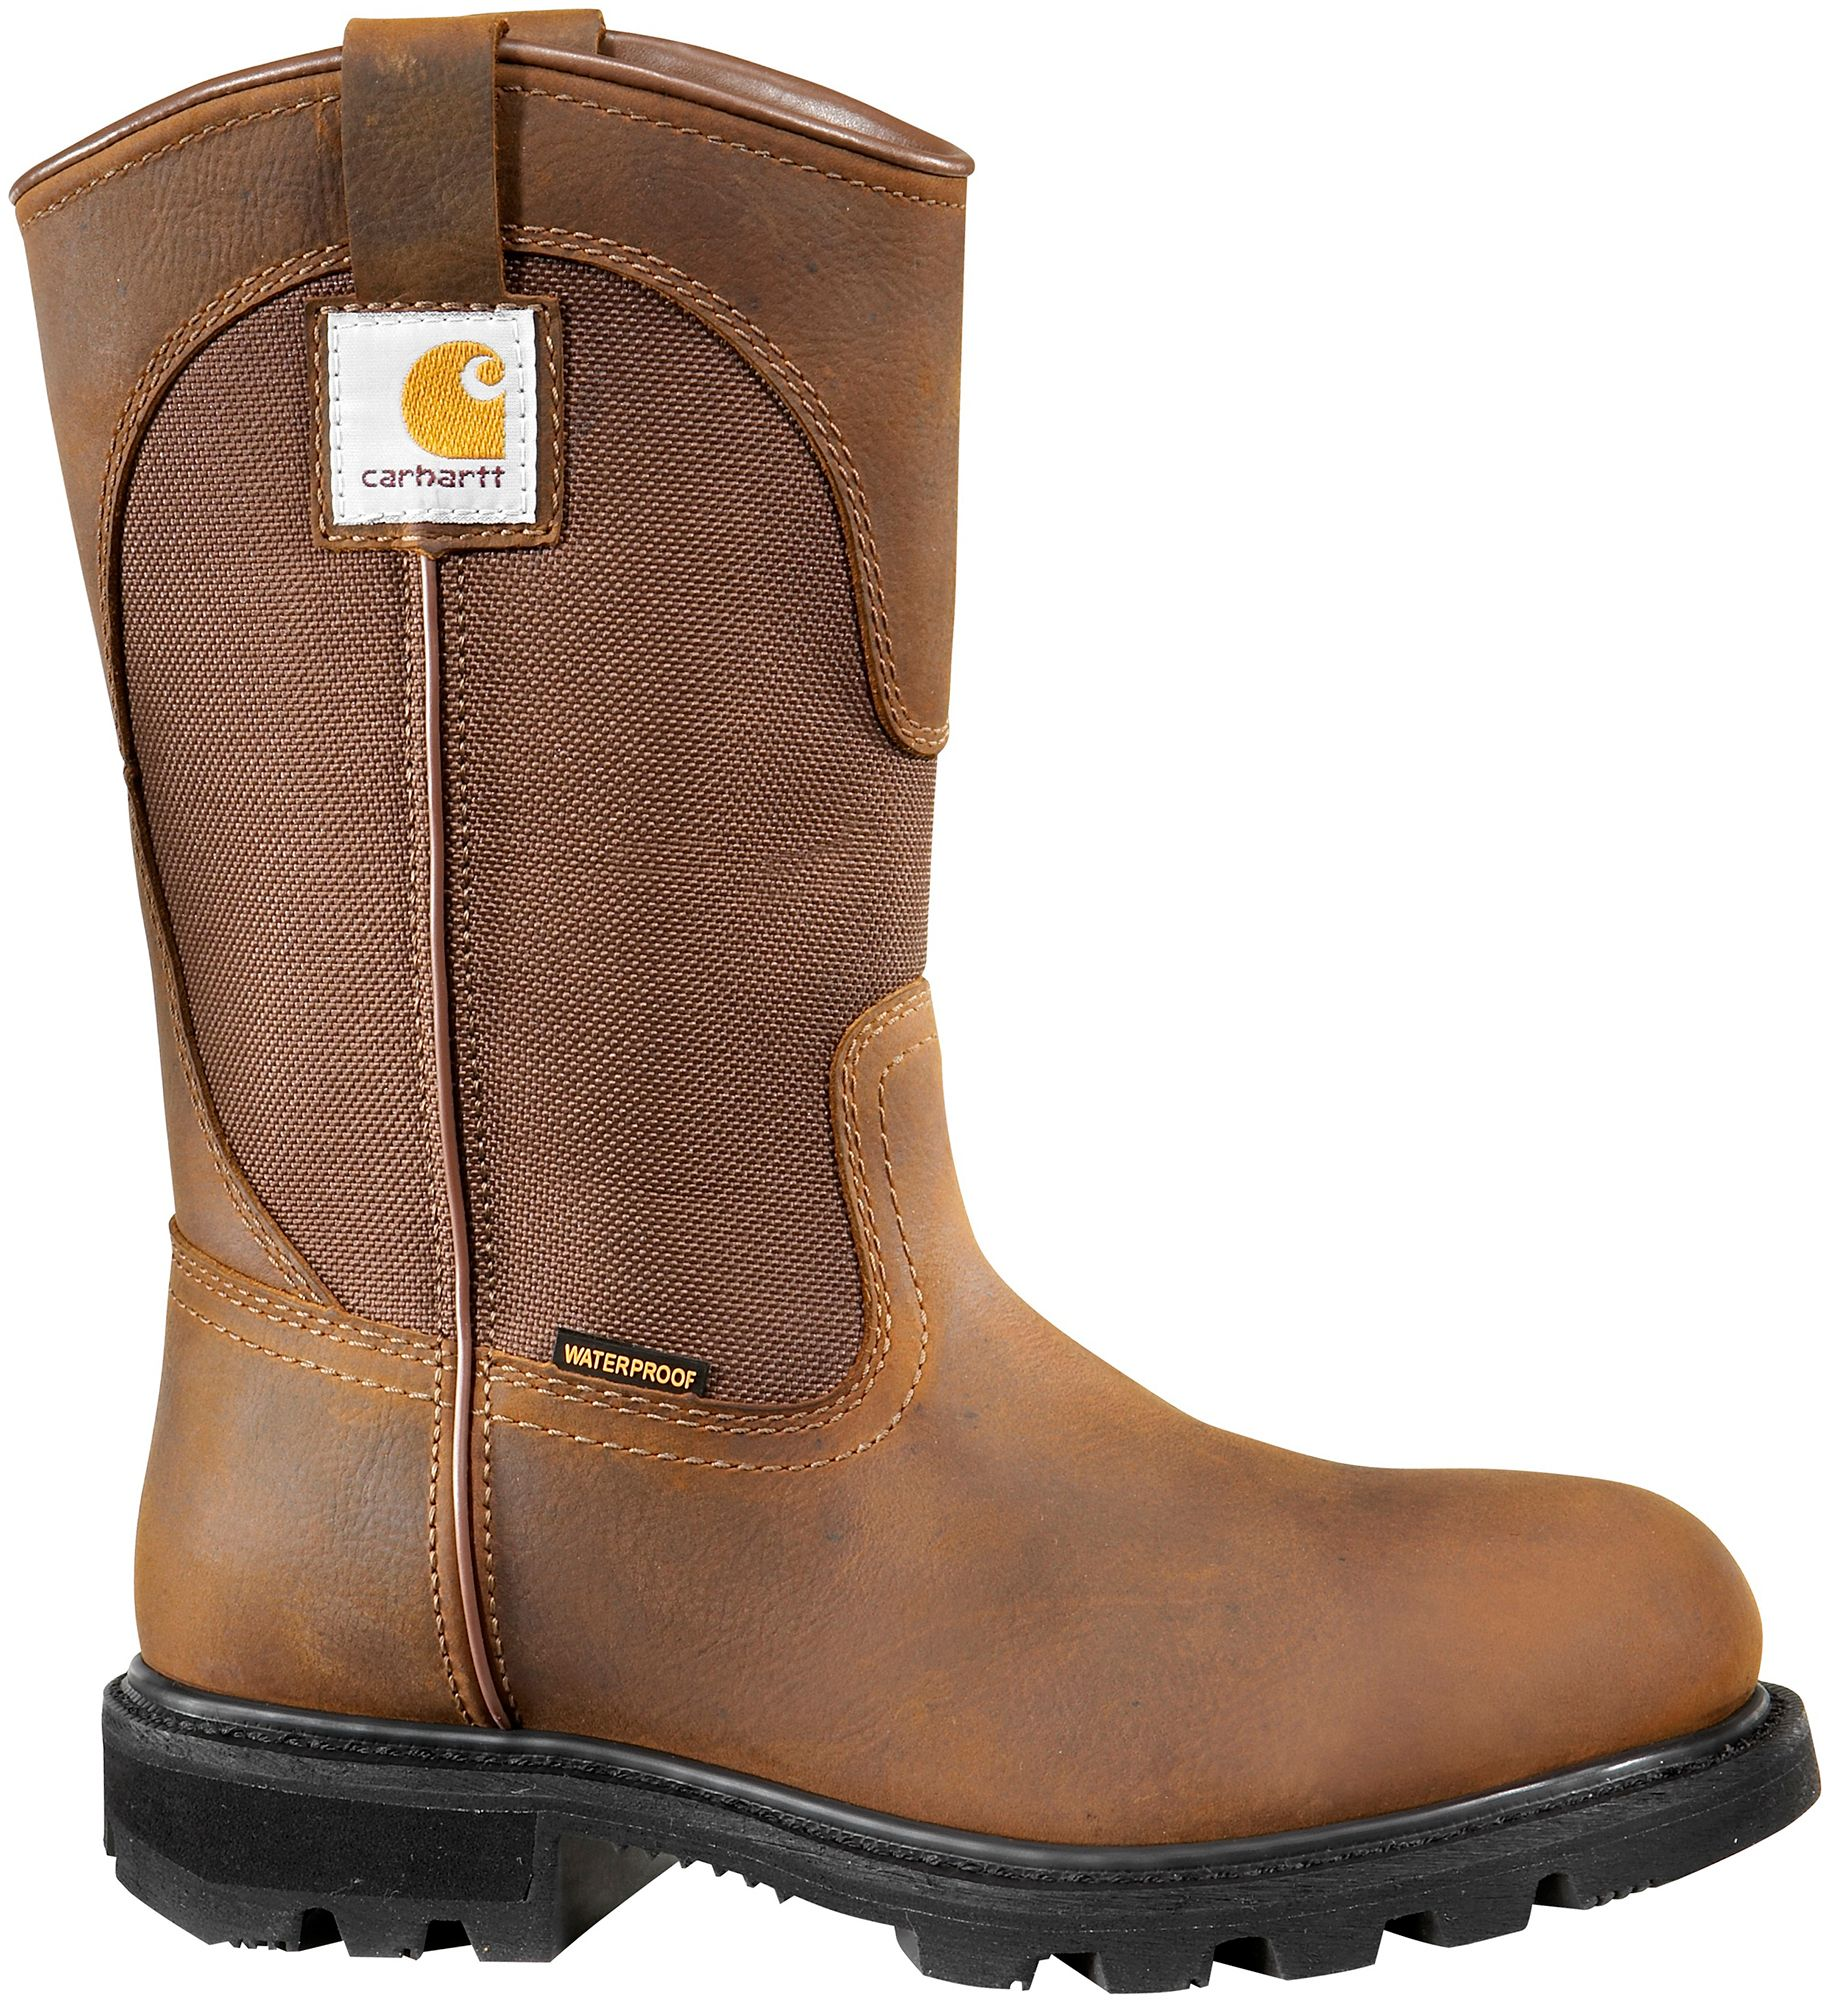 Women's Work Boots | DICK'S Sporting Goods